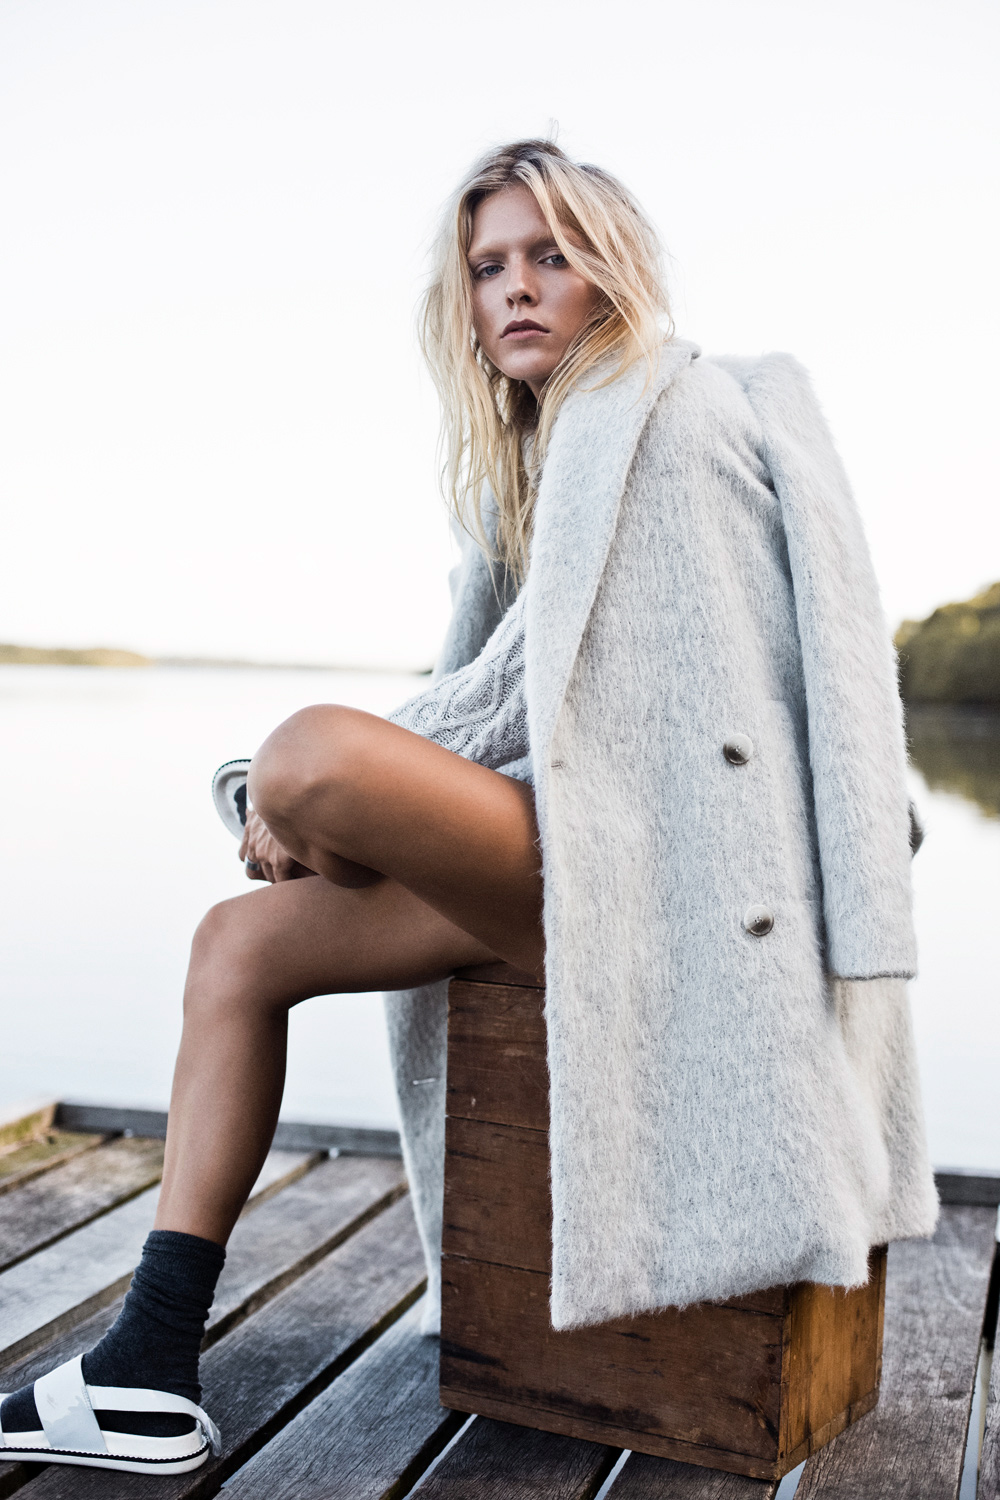 oracle fox journal, samantha cannon, nat lanyon, sir the label, grey trousers, max mara, tibi coat, styling, photography, winter, washed out, senso, cameo, topshop knit